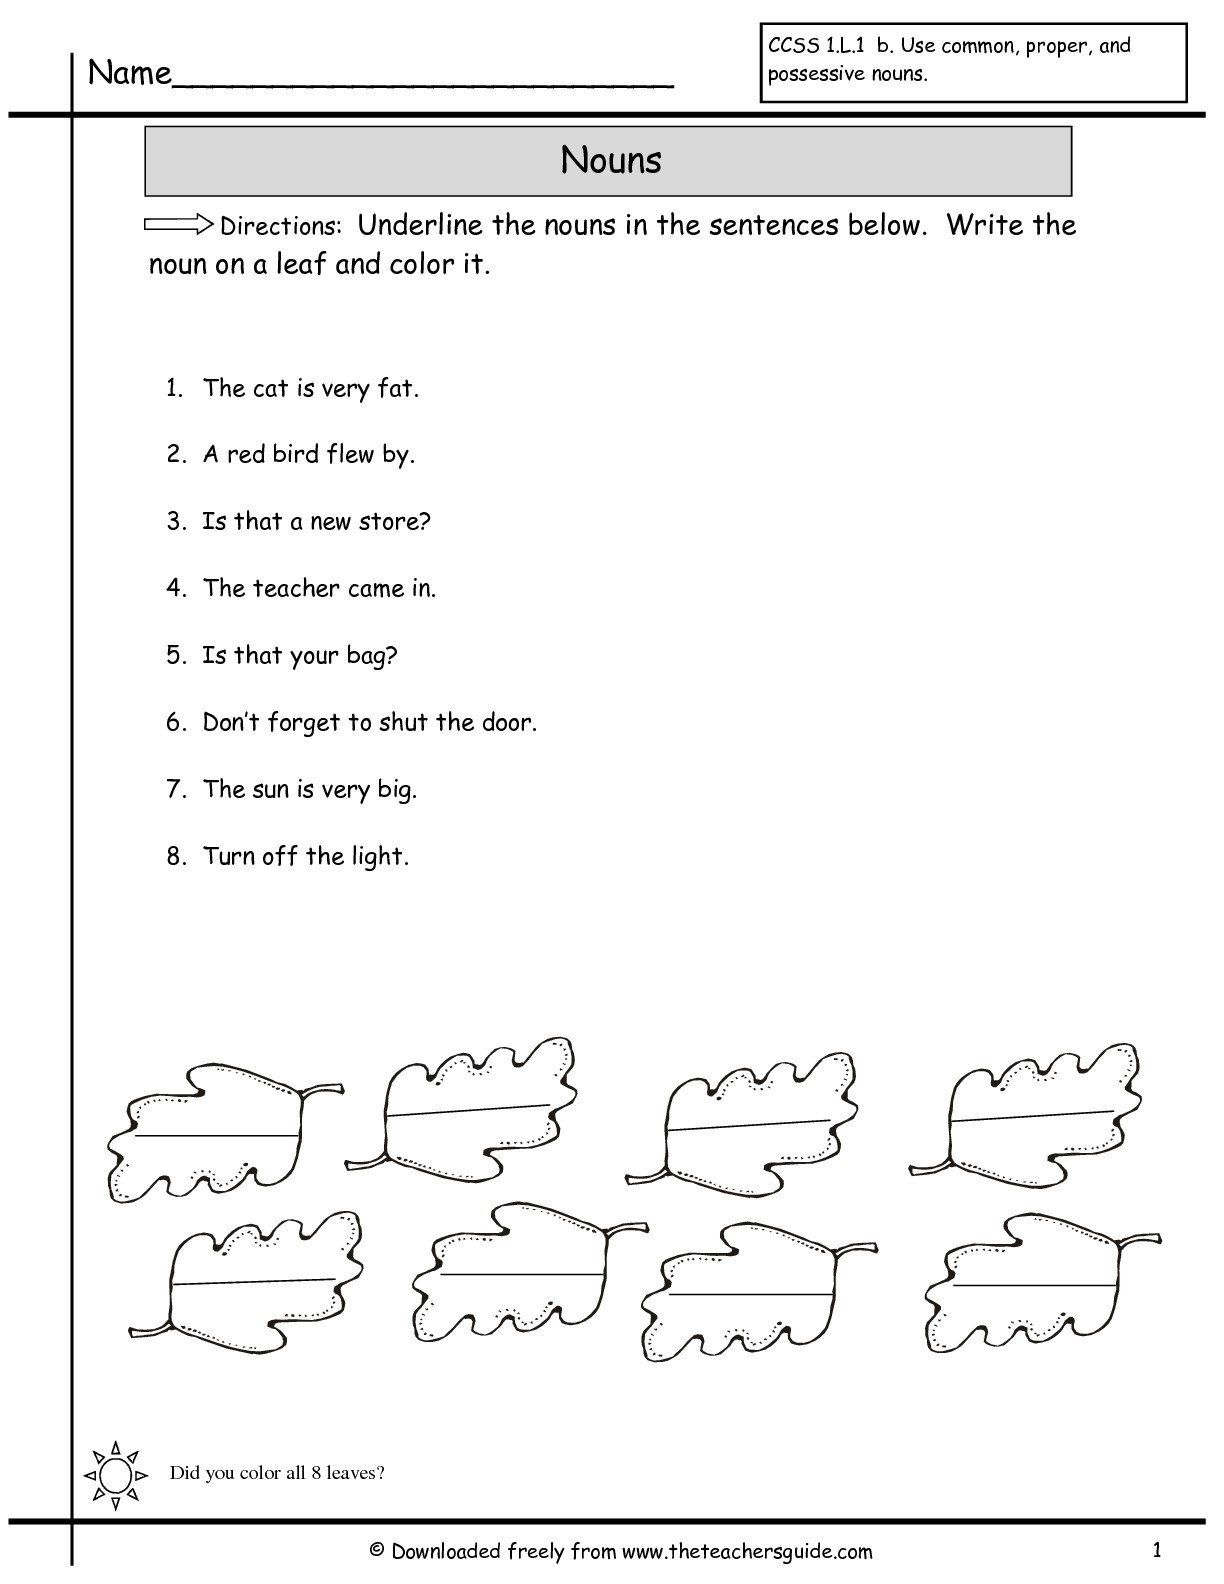 Possessive Nouns Worksheets 3rd Grade Free Pronoun